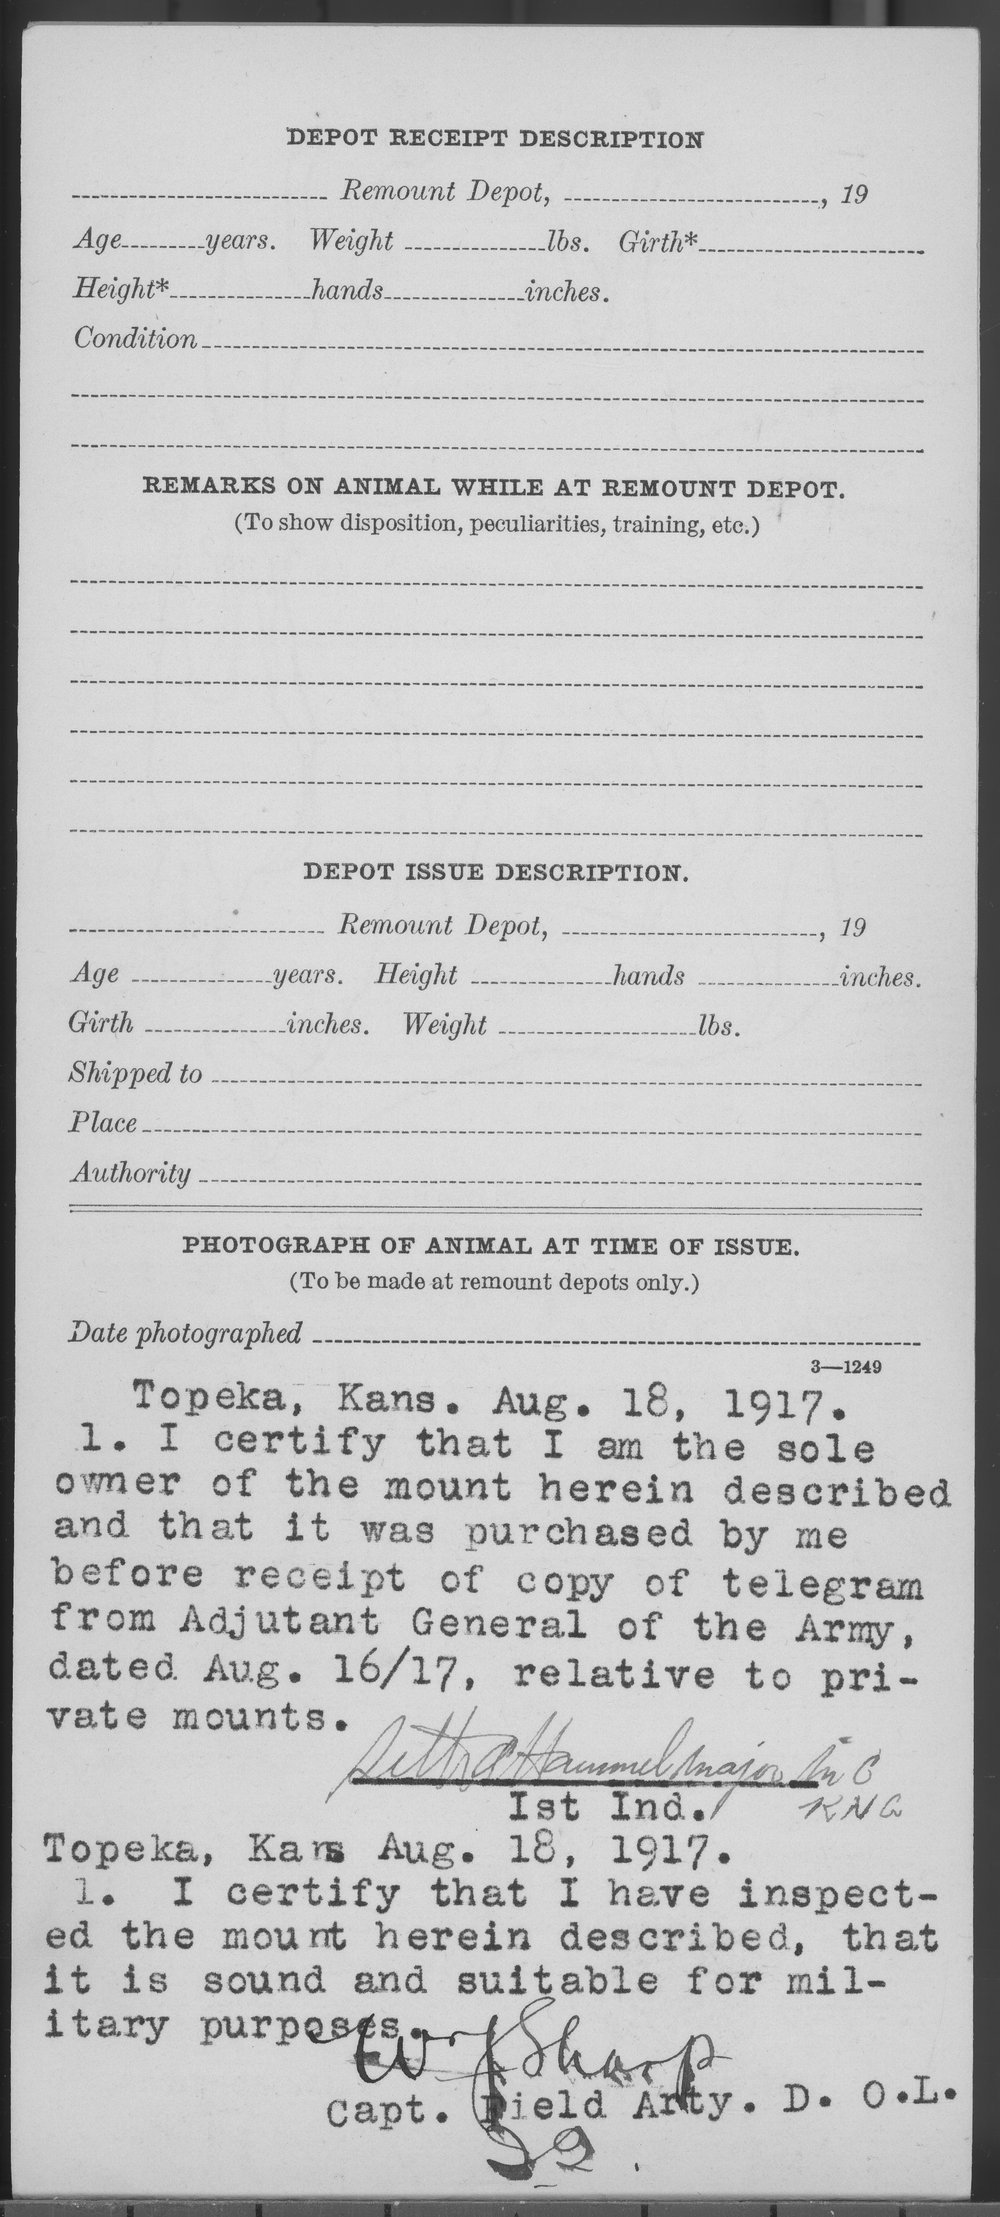 Descriptive card of public animals issued to Dr. Seth A. Hammel - 2